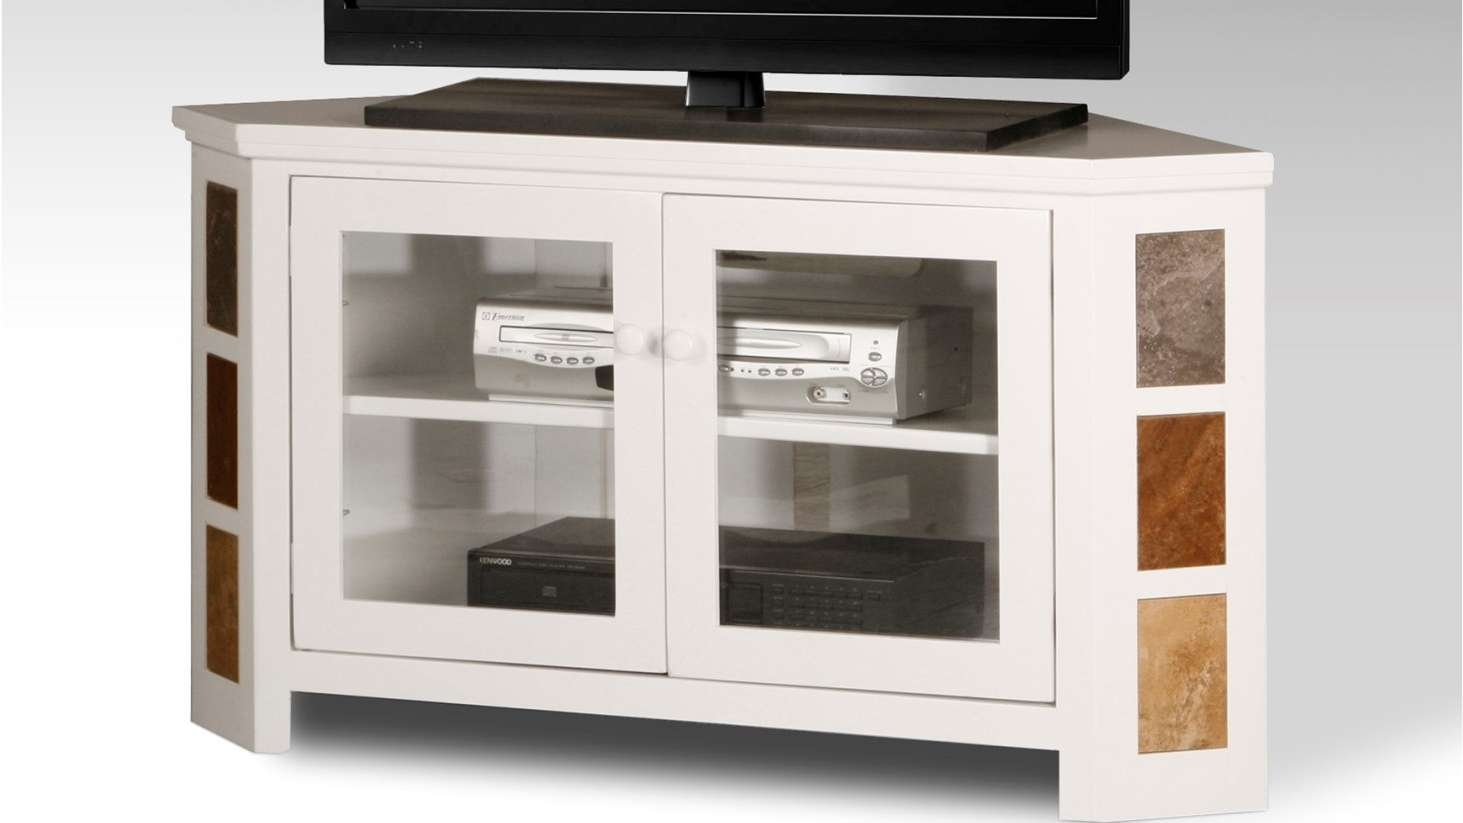 Tv : Amazing Oval White Tv Stands Techlink Ovid White Gloss Oval With Regard To Ovid White Tv Stands (View 8 of 15)